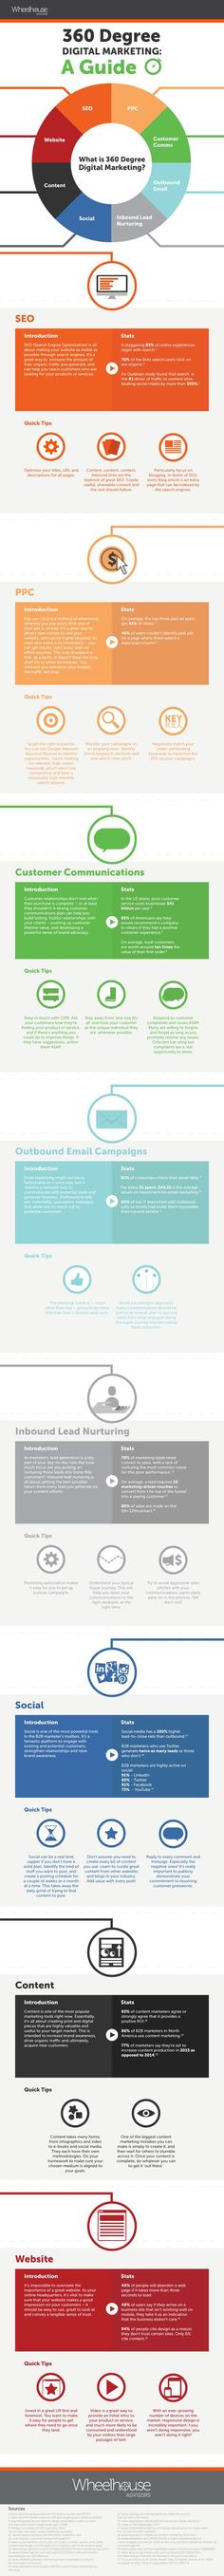 Developing A 360-Degree Digital Marketing Strategy - infographic | While check out #knackmap. To help you achieve your social media goal, all in one place. Learn more at knackmap.com: